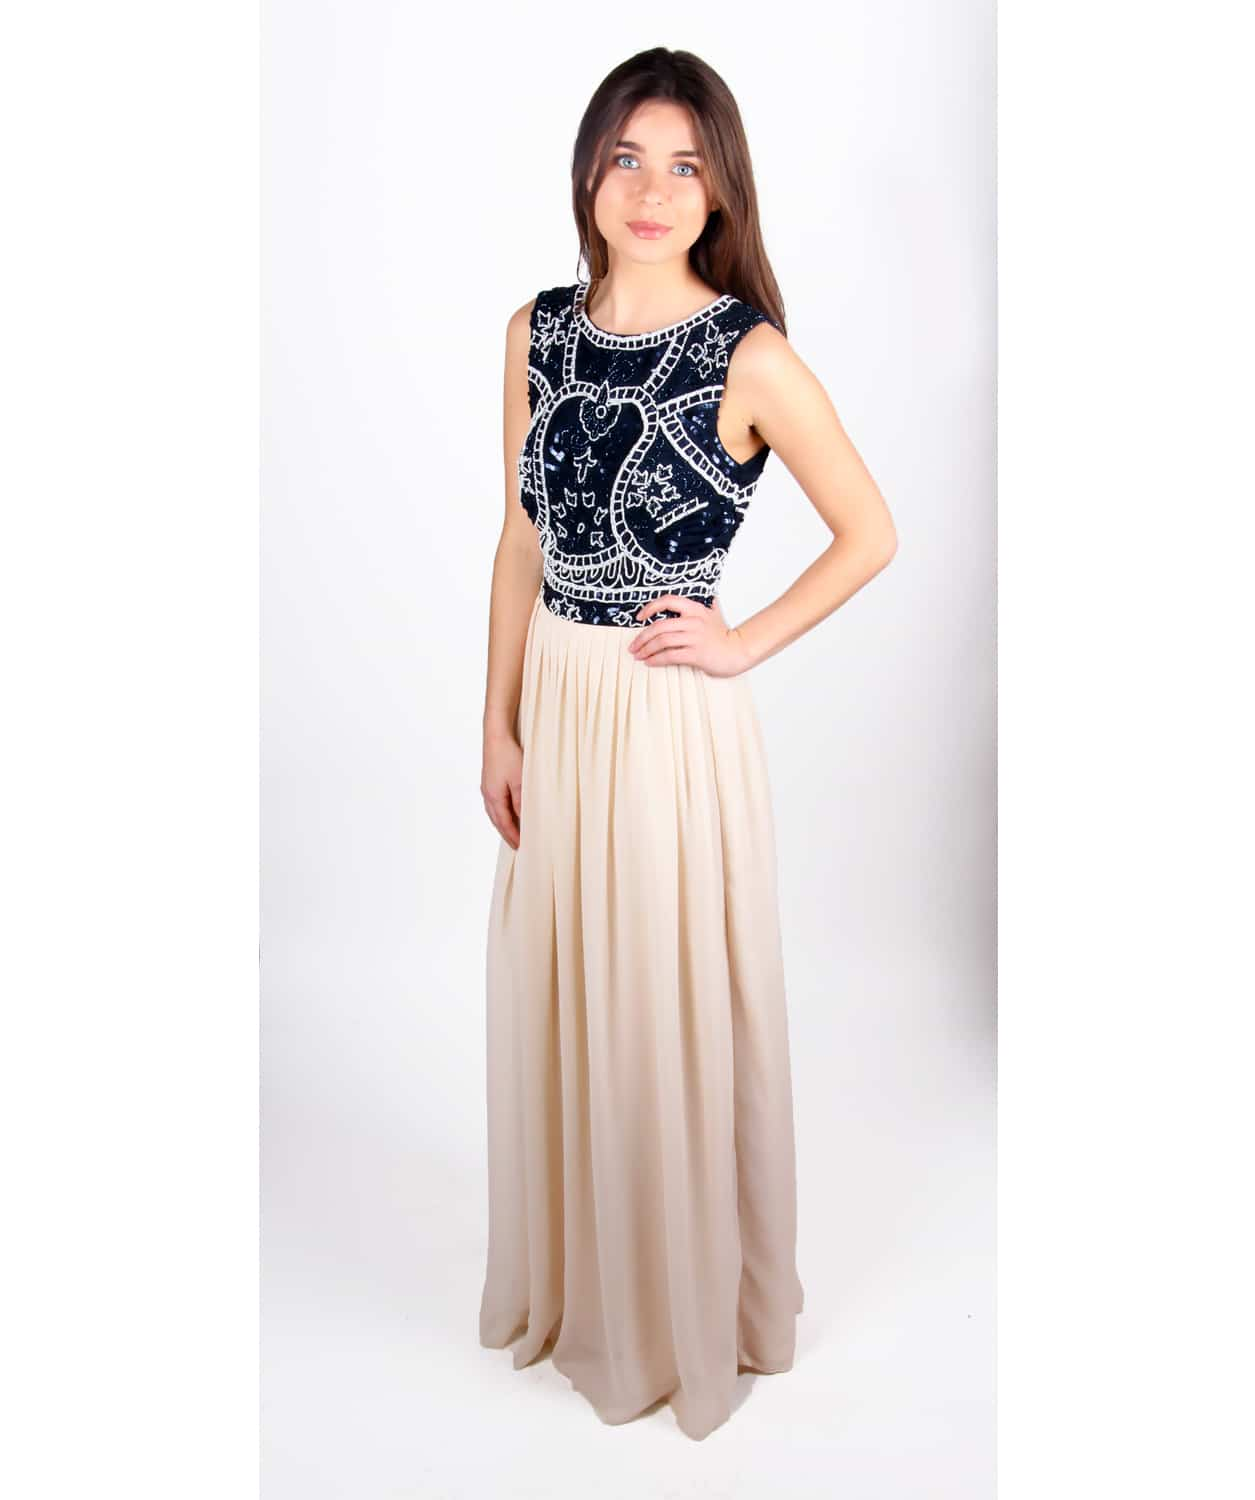 d3ff7c1a6 Alila Navy and Cream beaded Gown by Lace & Beads.